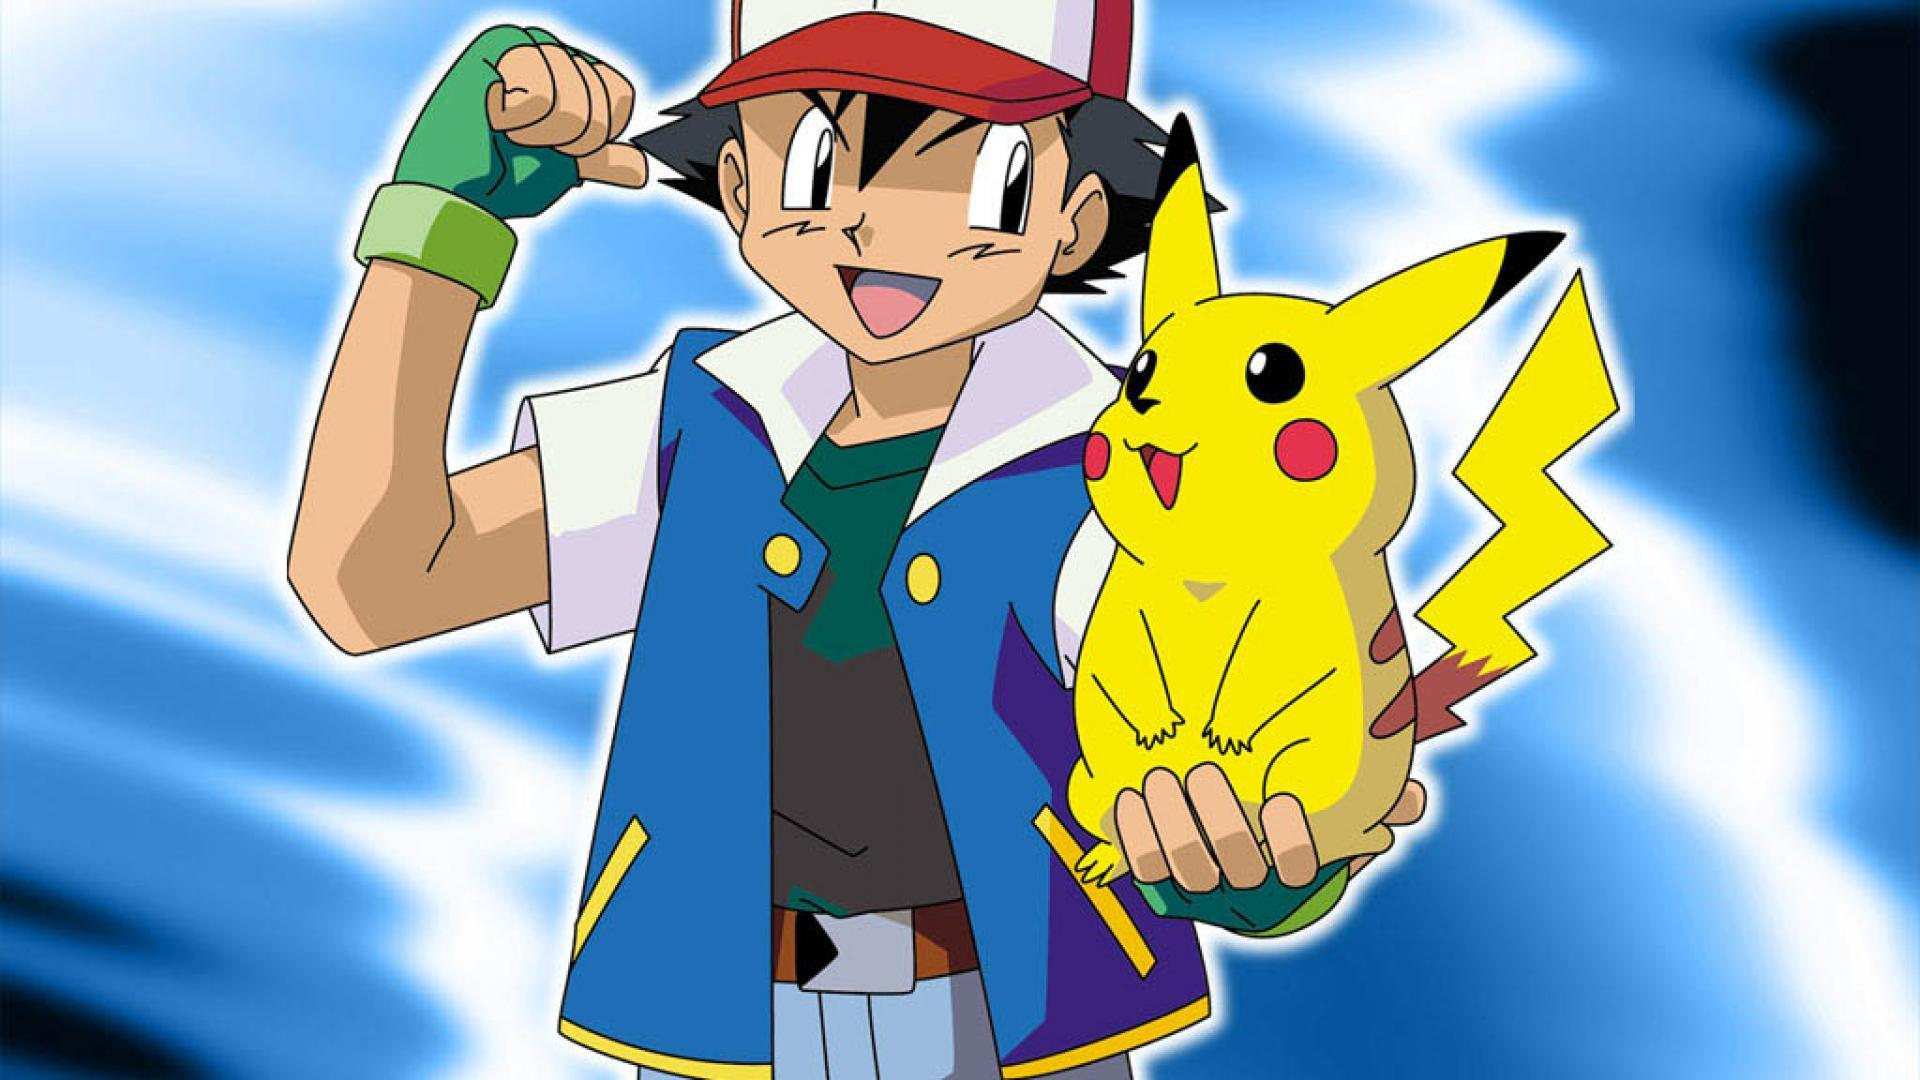 Download Pokemon Pikachu Images Wallpaper 1920x1080 | Full HD ...